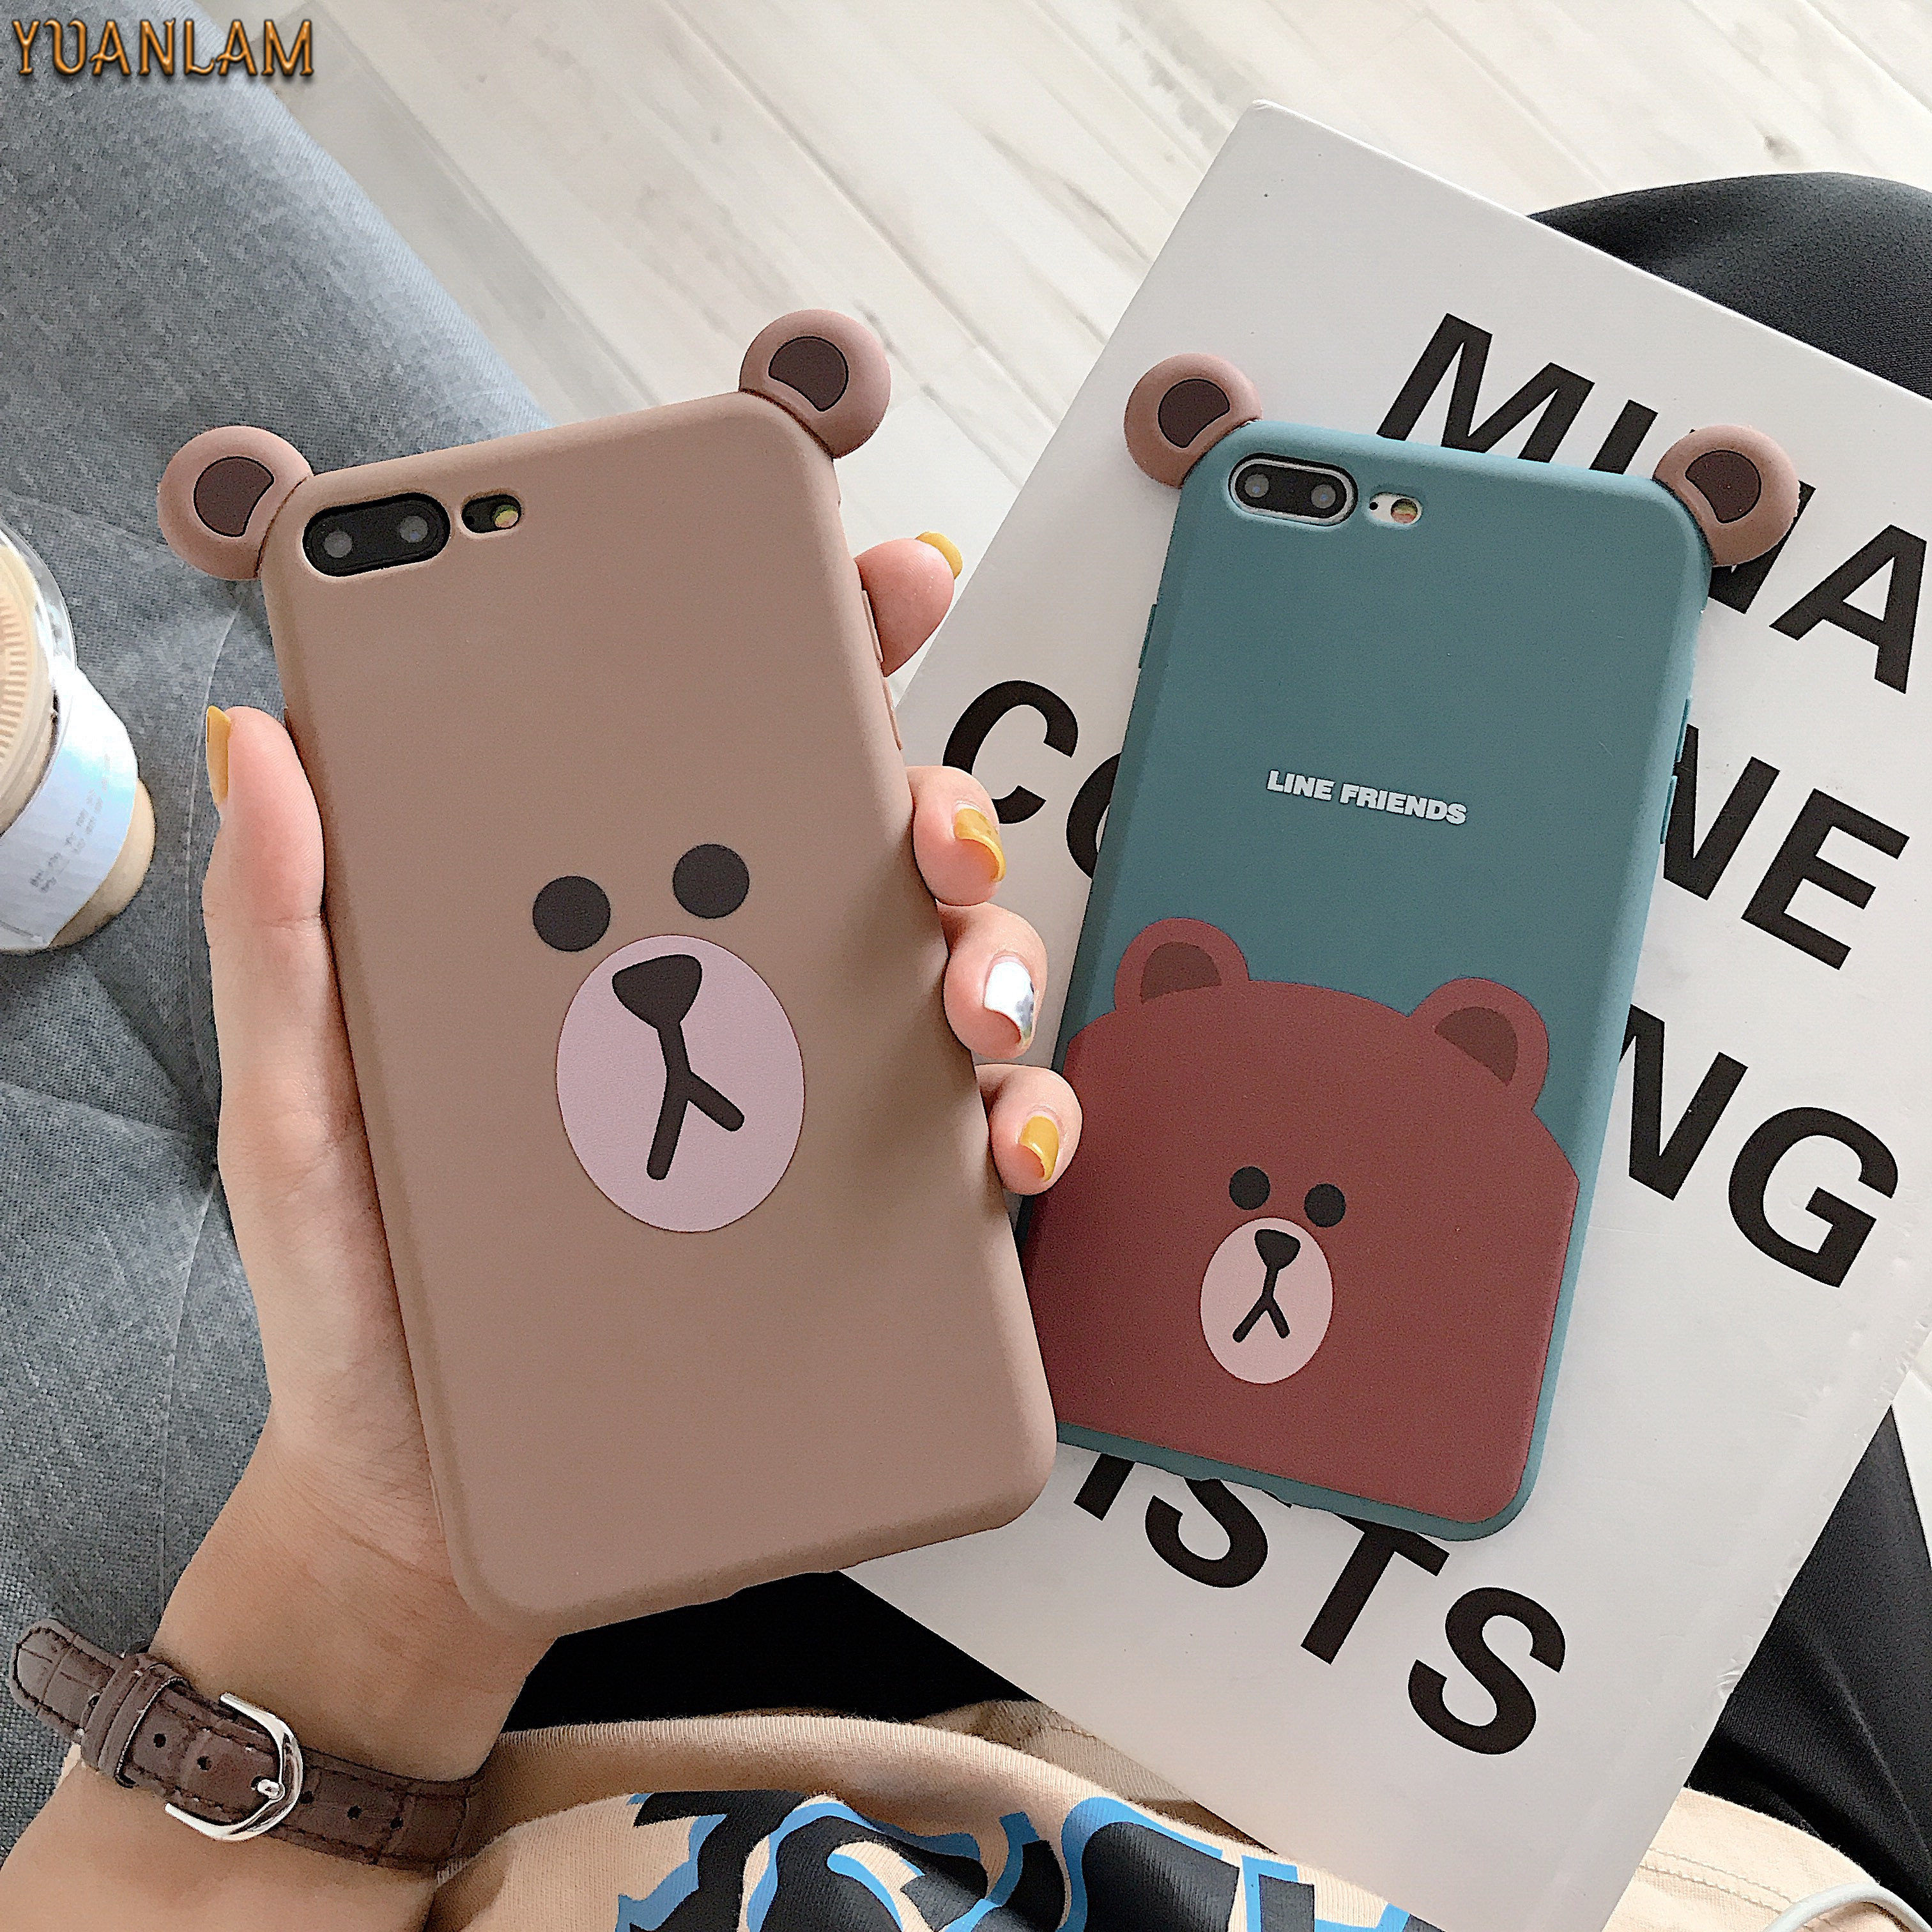 For iPhone 7 Case 3D Cute Cartoon Animal brown Bear Ear Phone Cases For iPhone 6S 6 7 8 Plus X Xs max Xr Silicone Soft TPU Funda